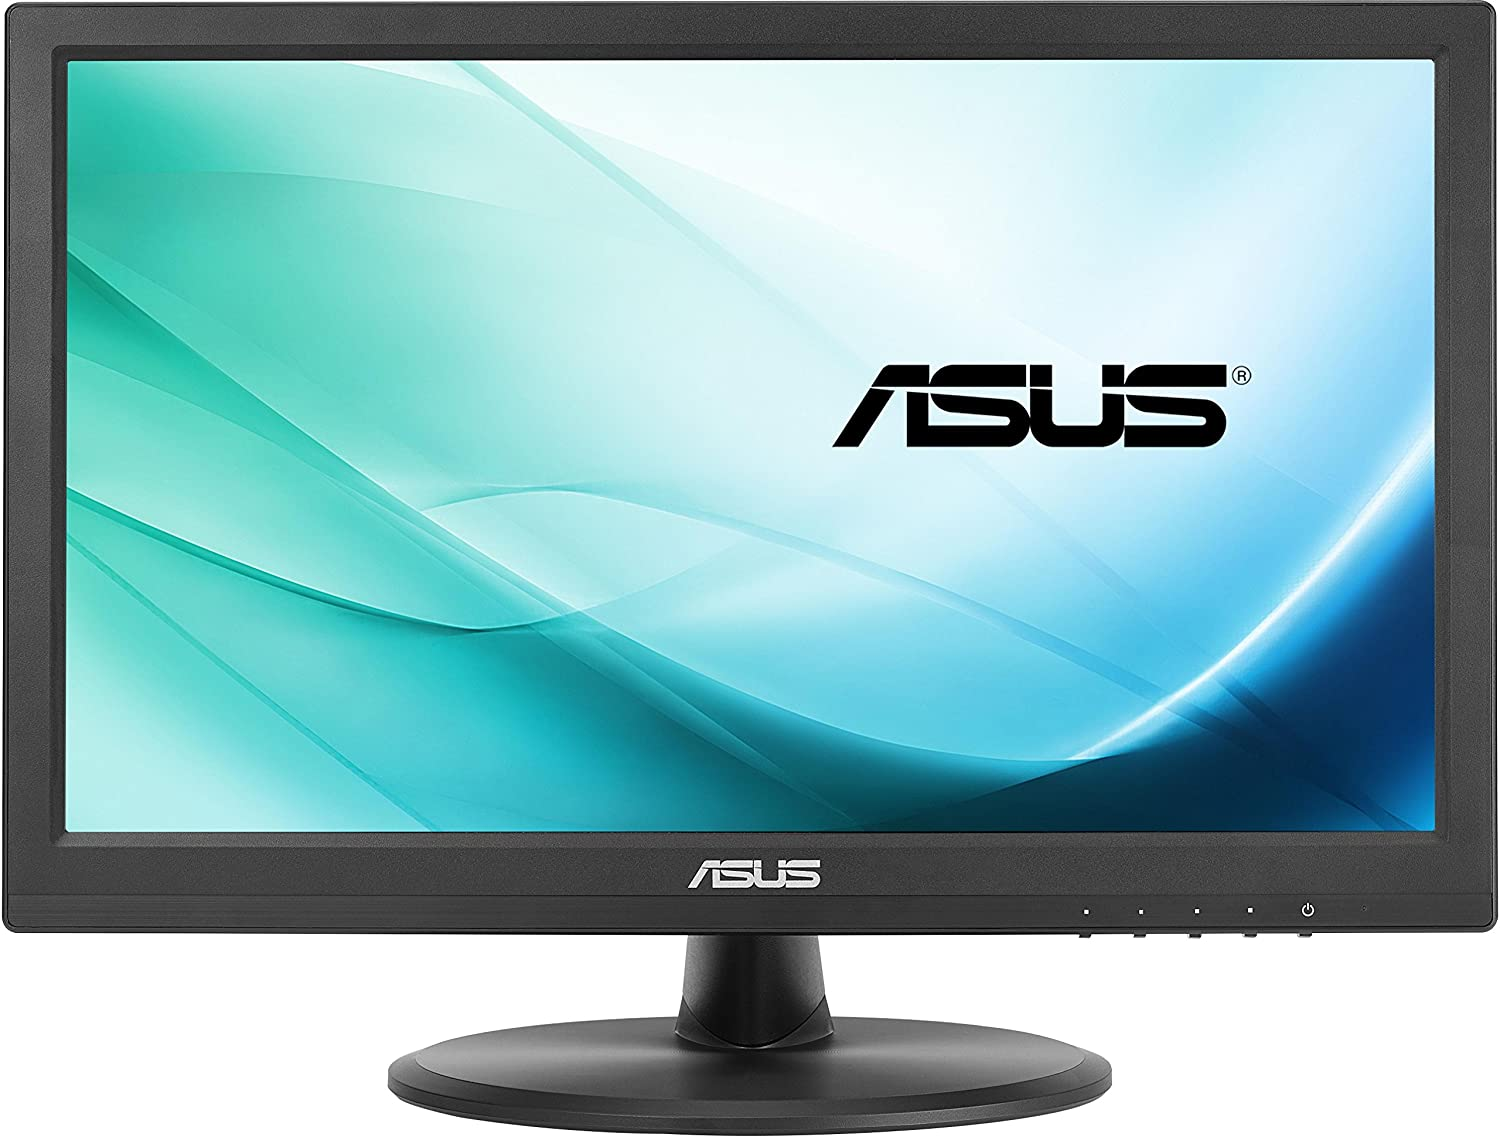 Asus VT168H Monitor 15.6', 1366x768, TN, 10-Point Touch Monitor, HDMI, Flicker Free, Low Blue Light, Certificato TUV 90LM02G1-B02170